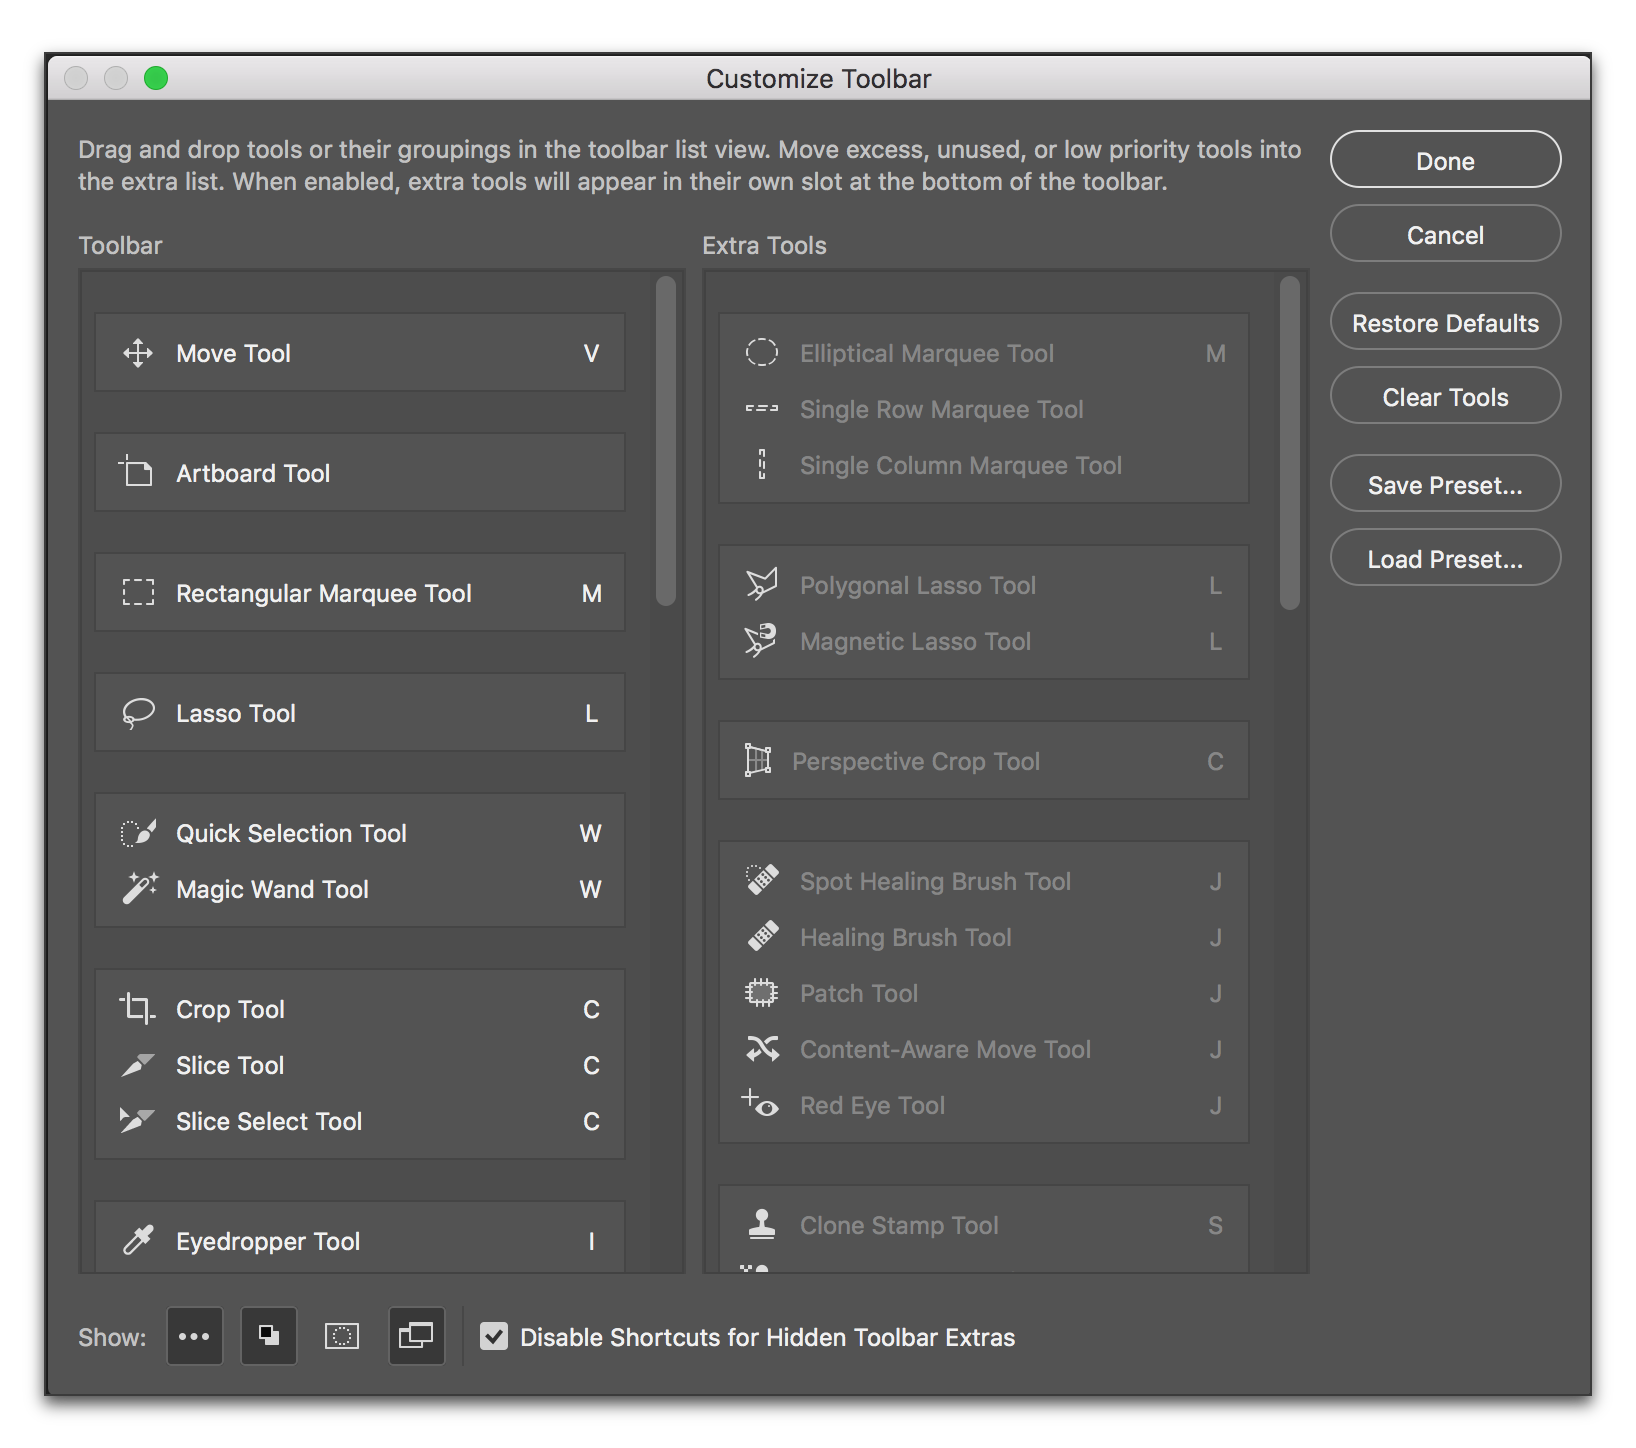 Adobe Photoshop CC 2015: Customize the Toolbar